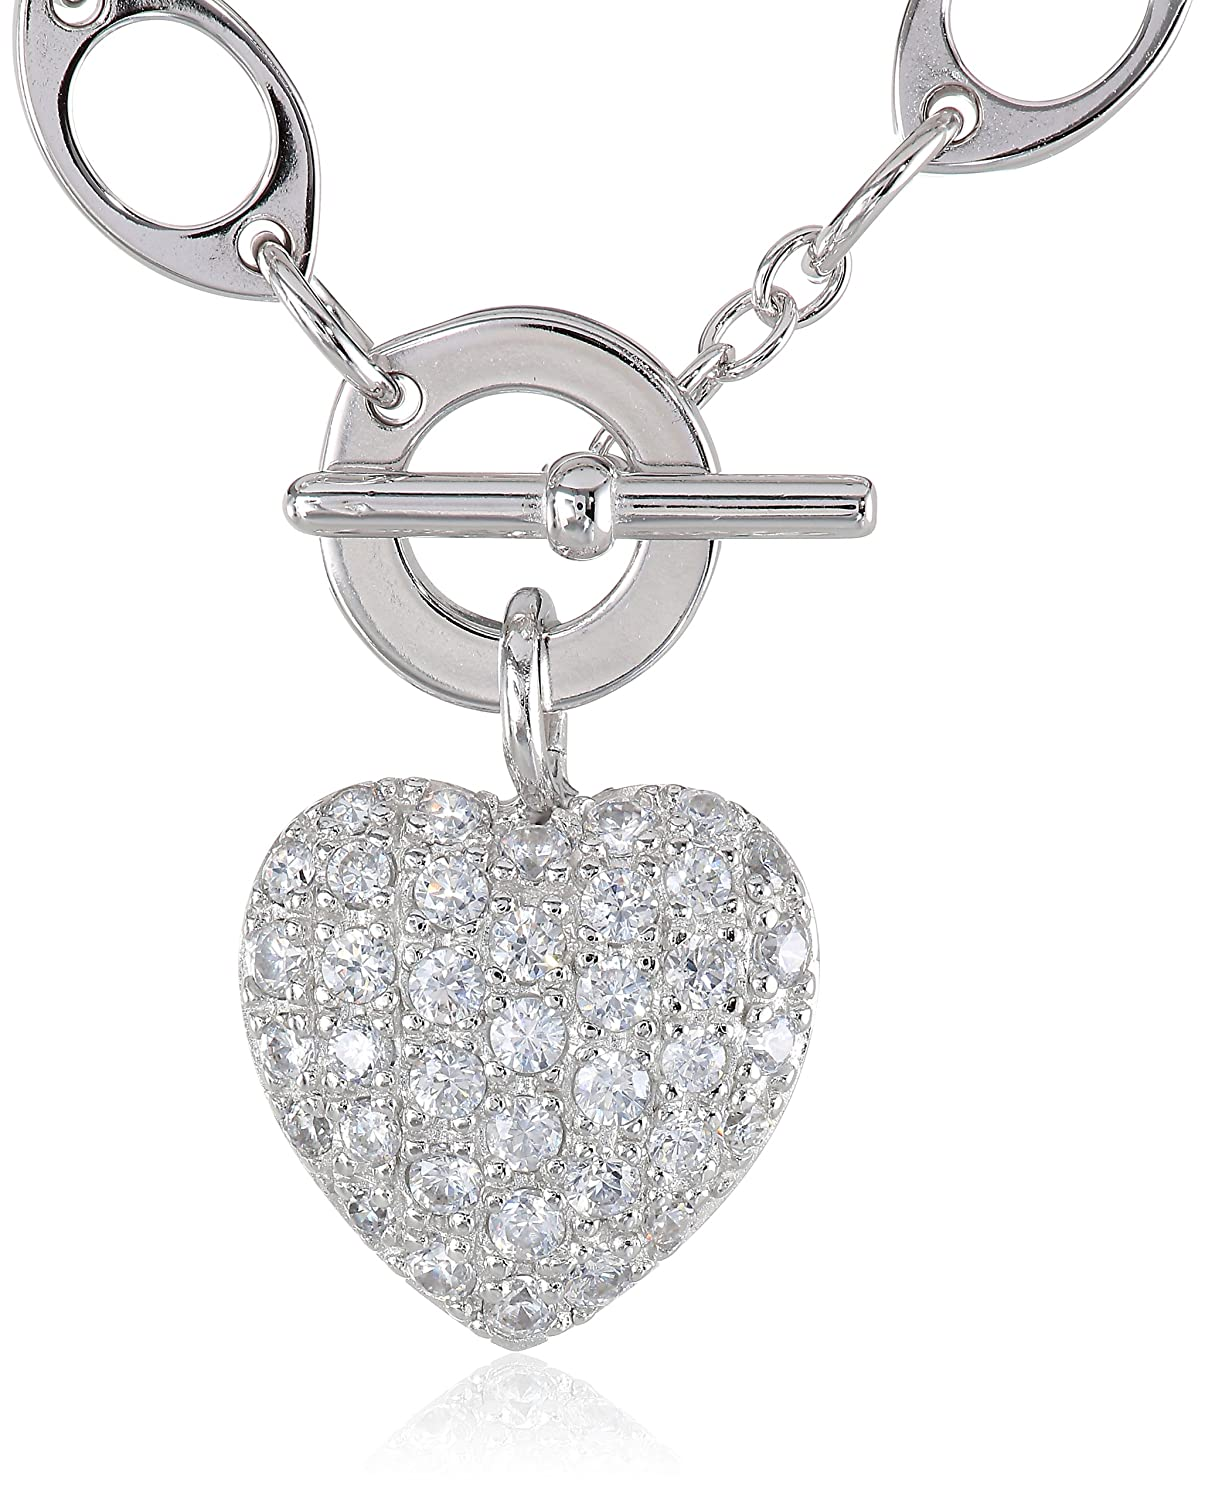 Bling Jewelry Pave CZ Puffed Heart Pendant Sterling Silver Necklace 18 Inches BPO1T9Imn